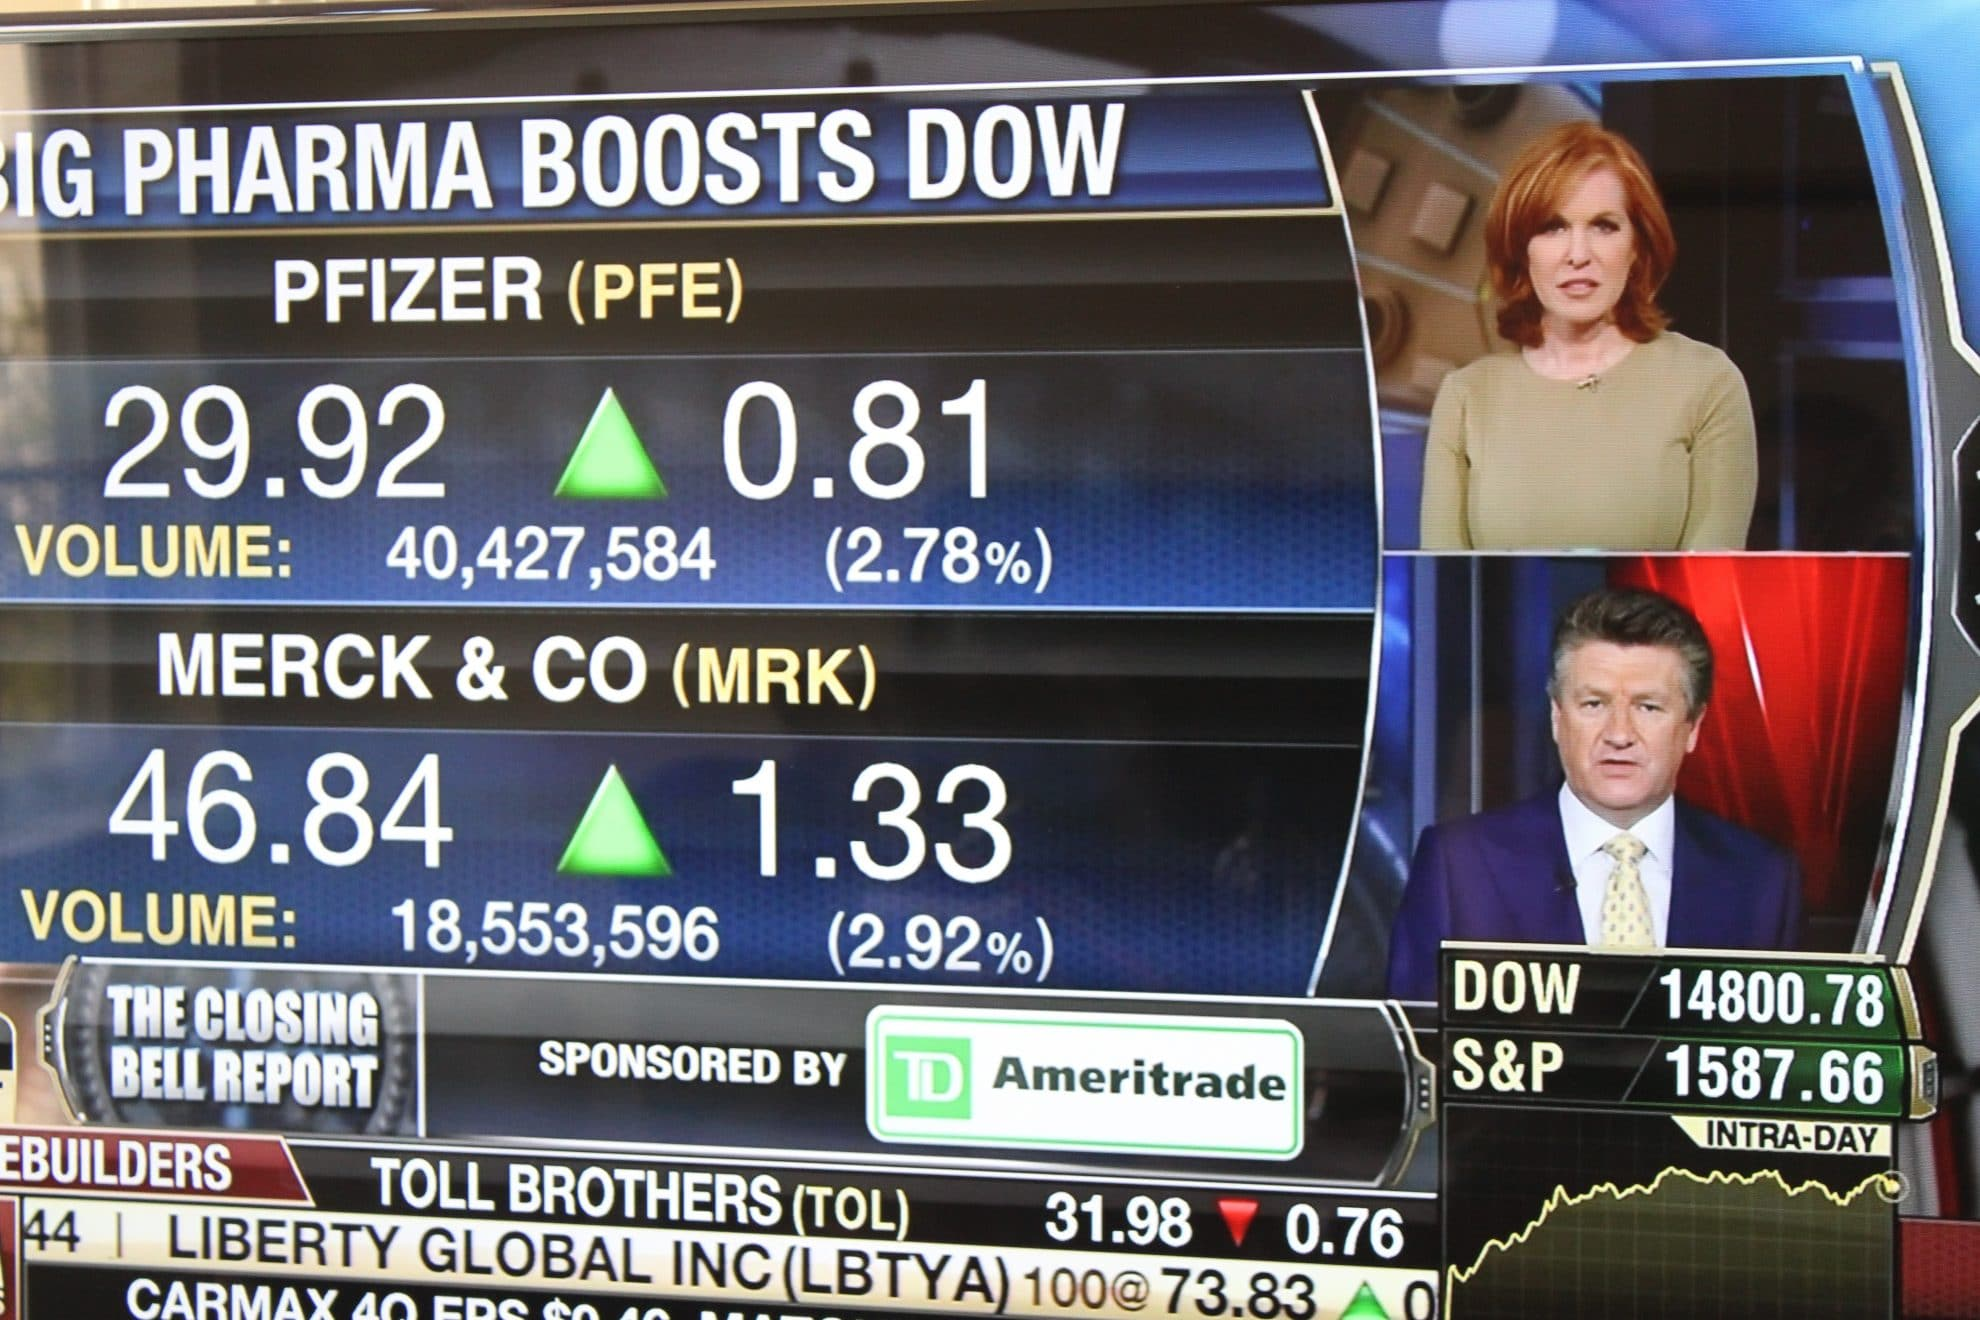 The Closing Bell Report.